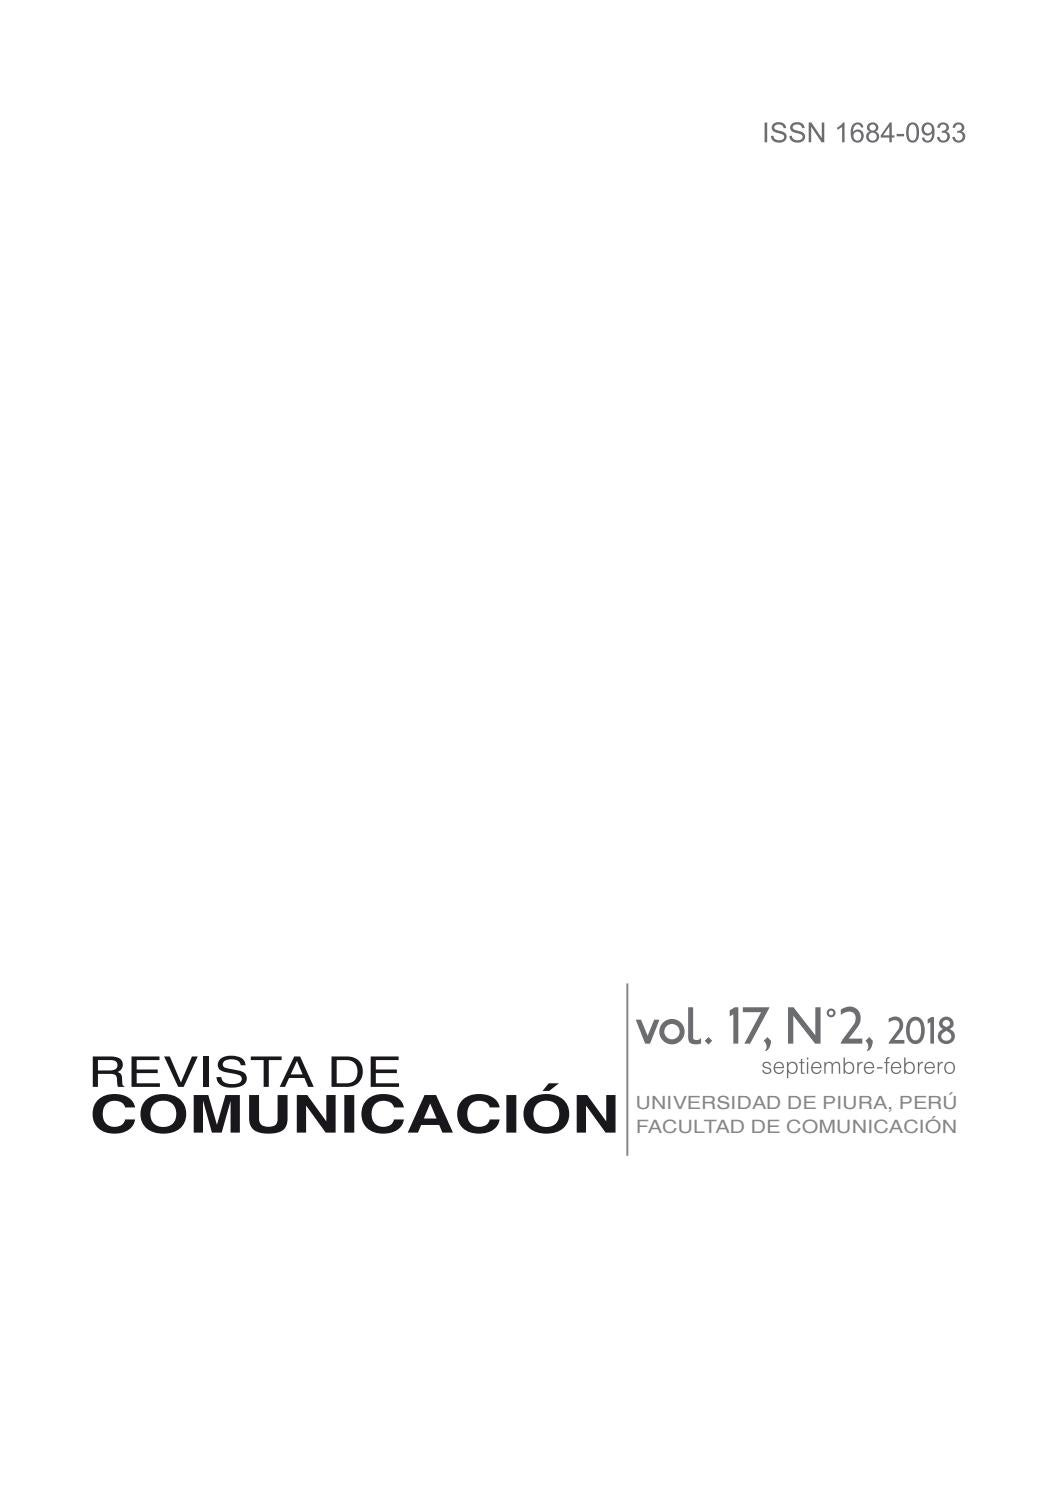 Revista de Comunicación. vol. 17. N°2, 2018 by Revista de ...